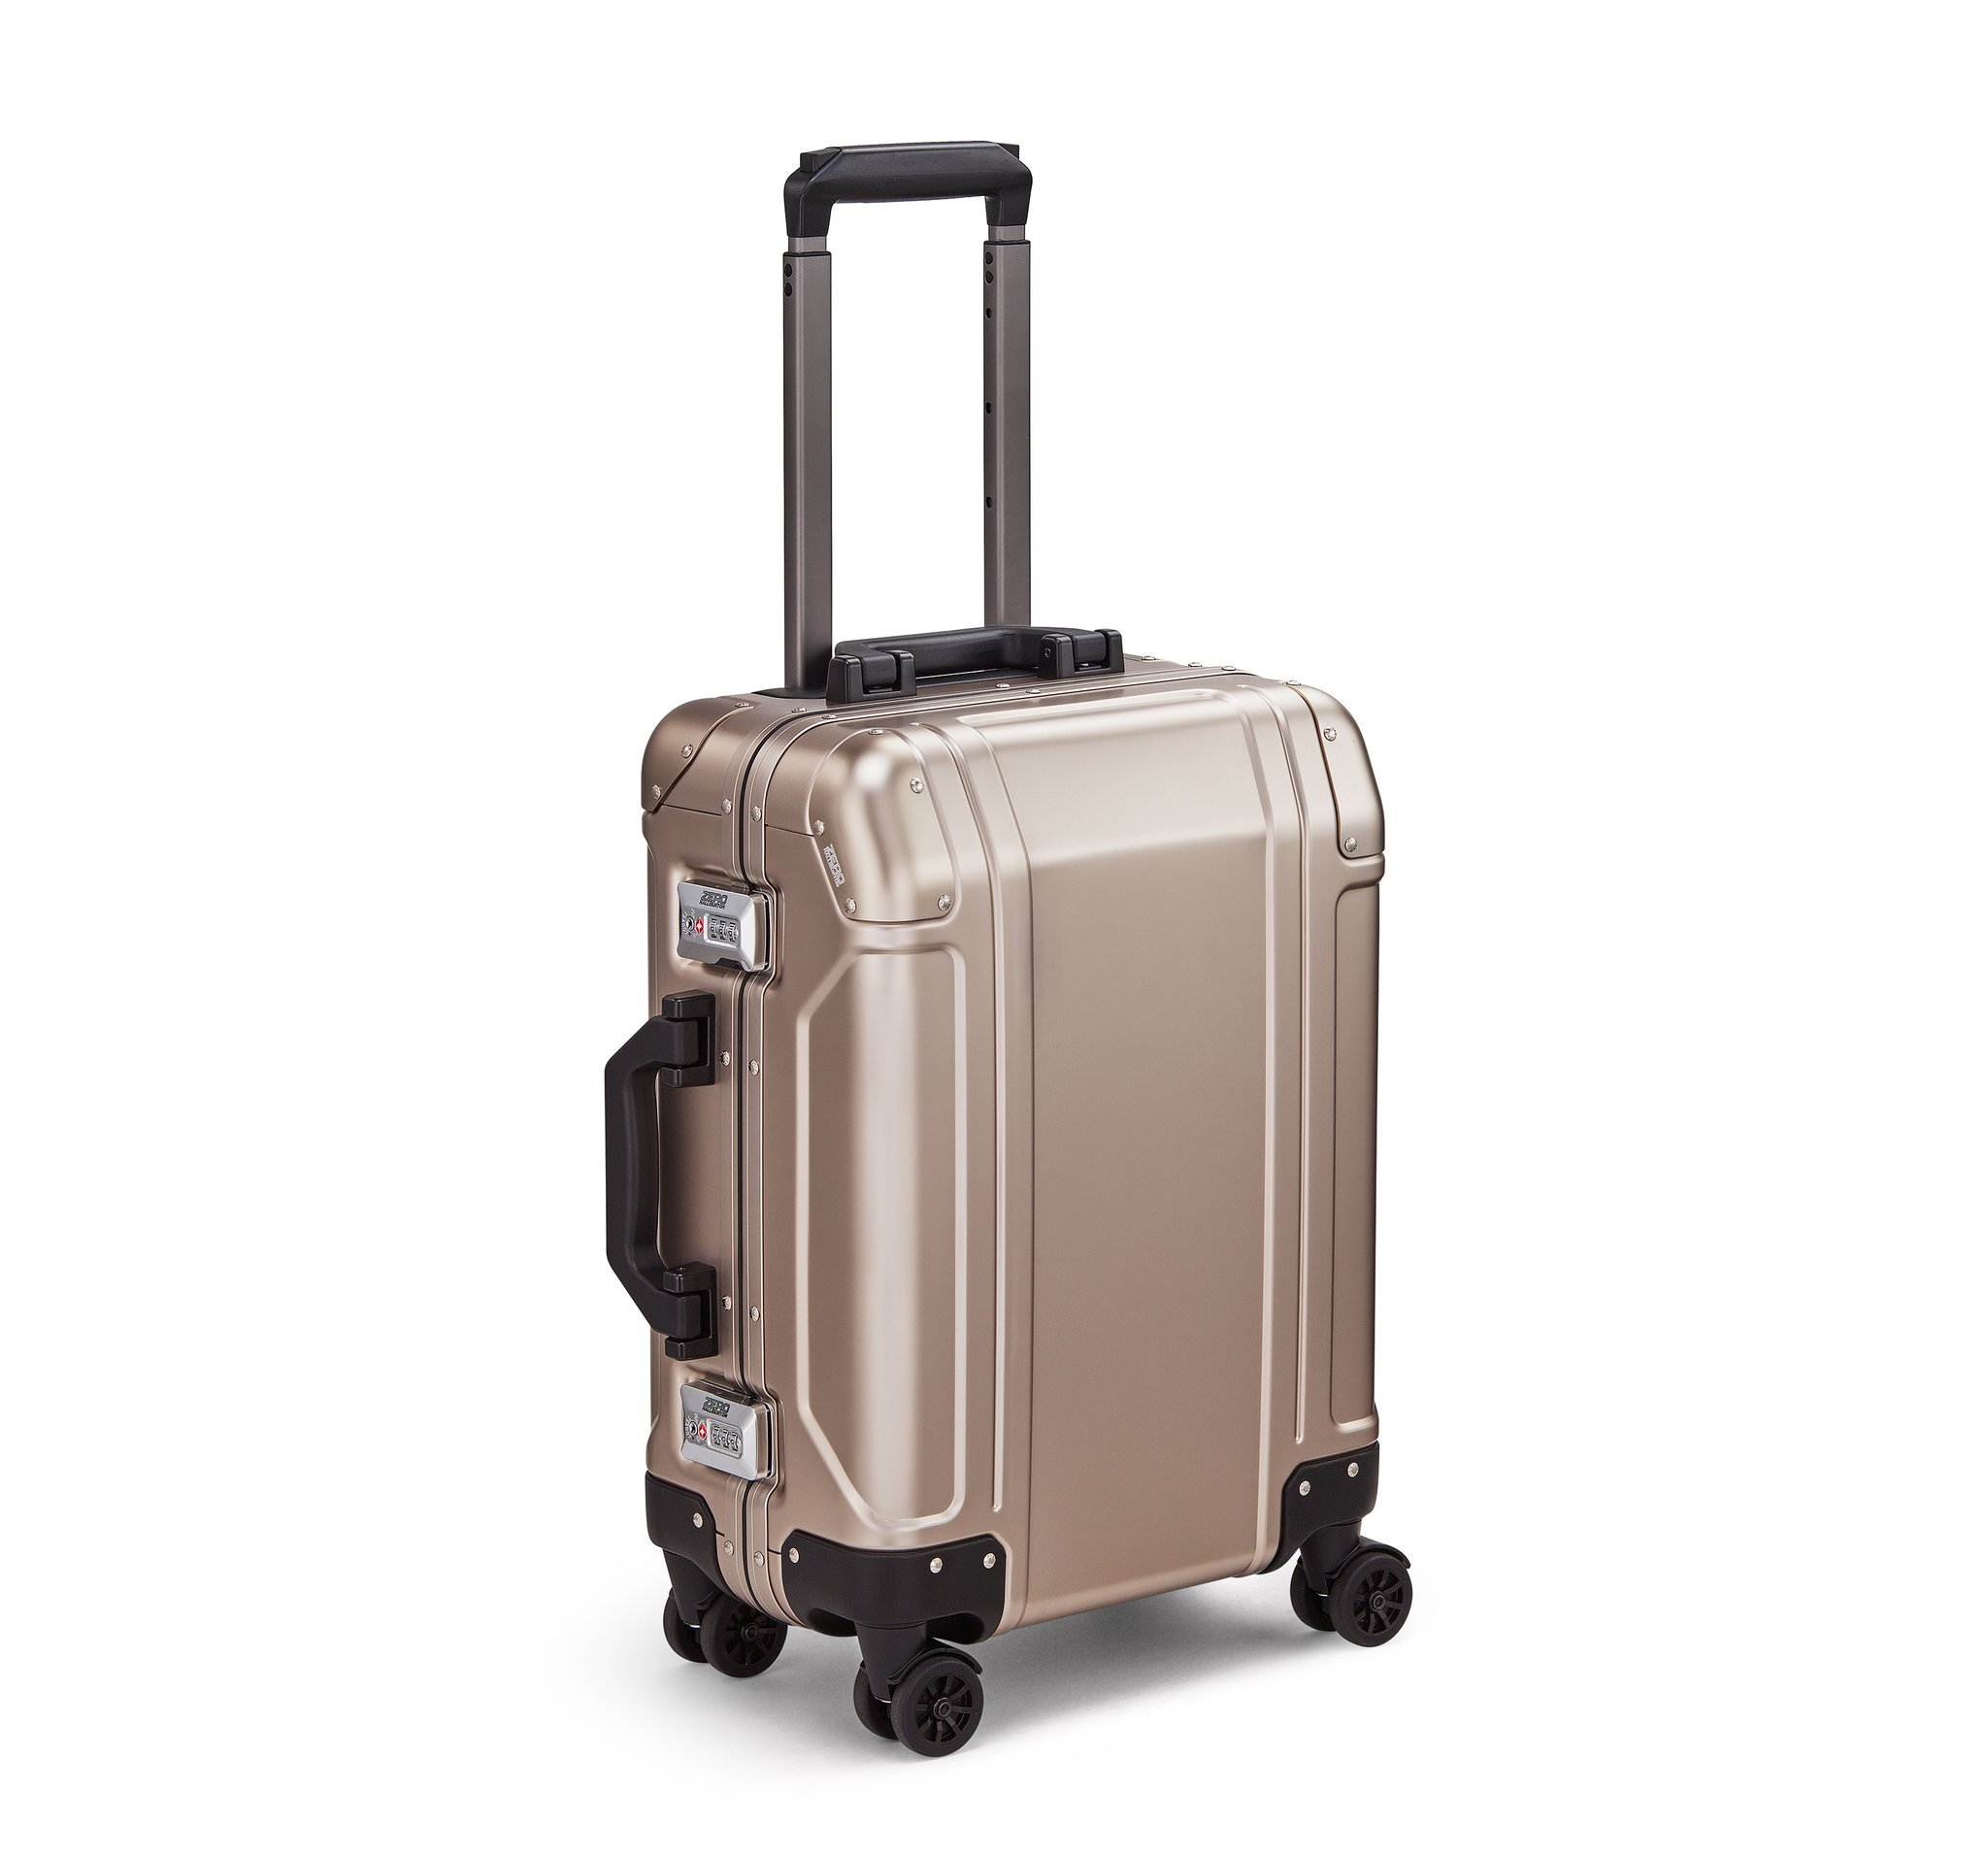 GEO Aluminum 3.0 - Carry-on 4-Wheel Spinner by Zero Halliburton (Color: Bronze)